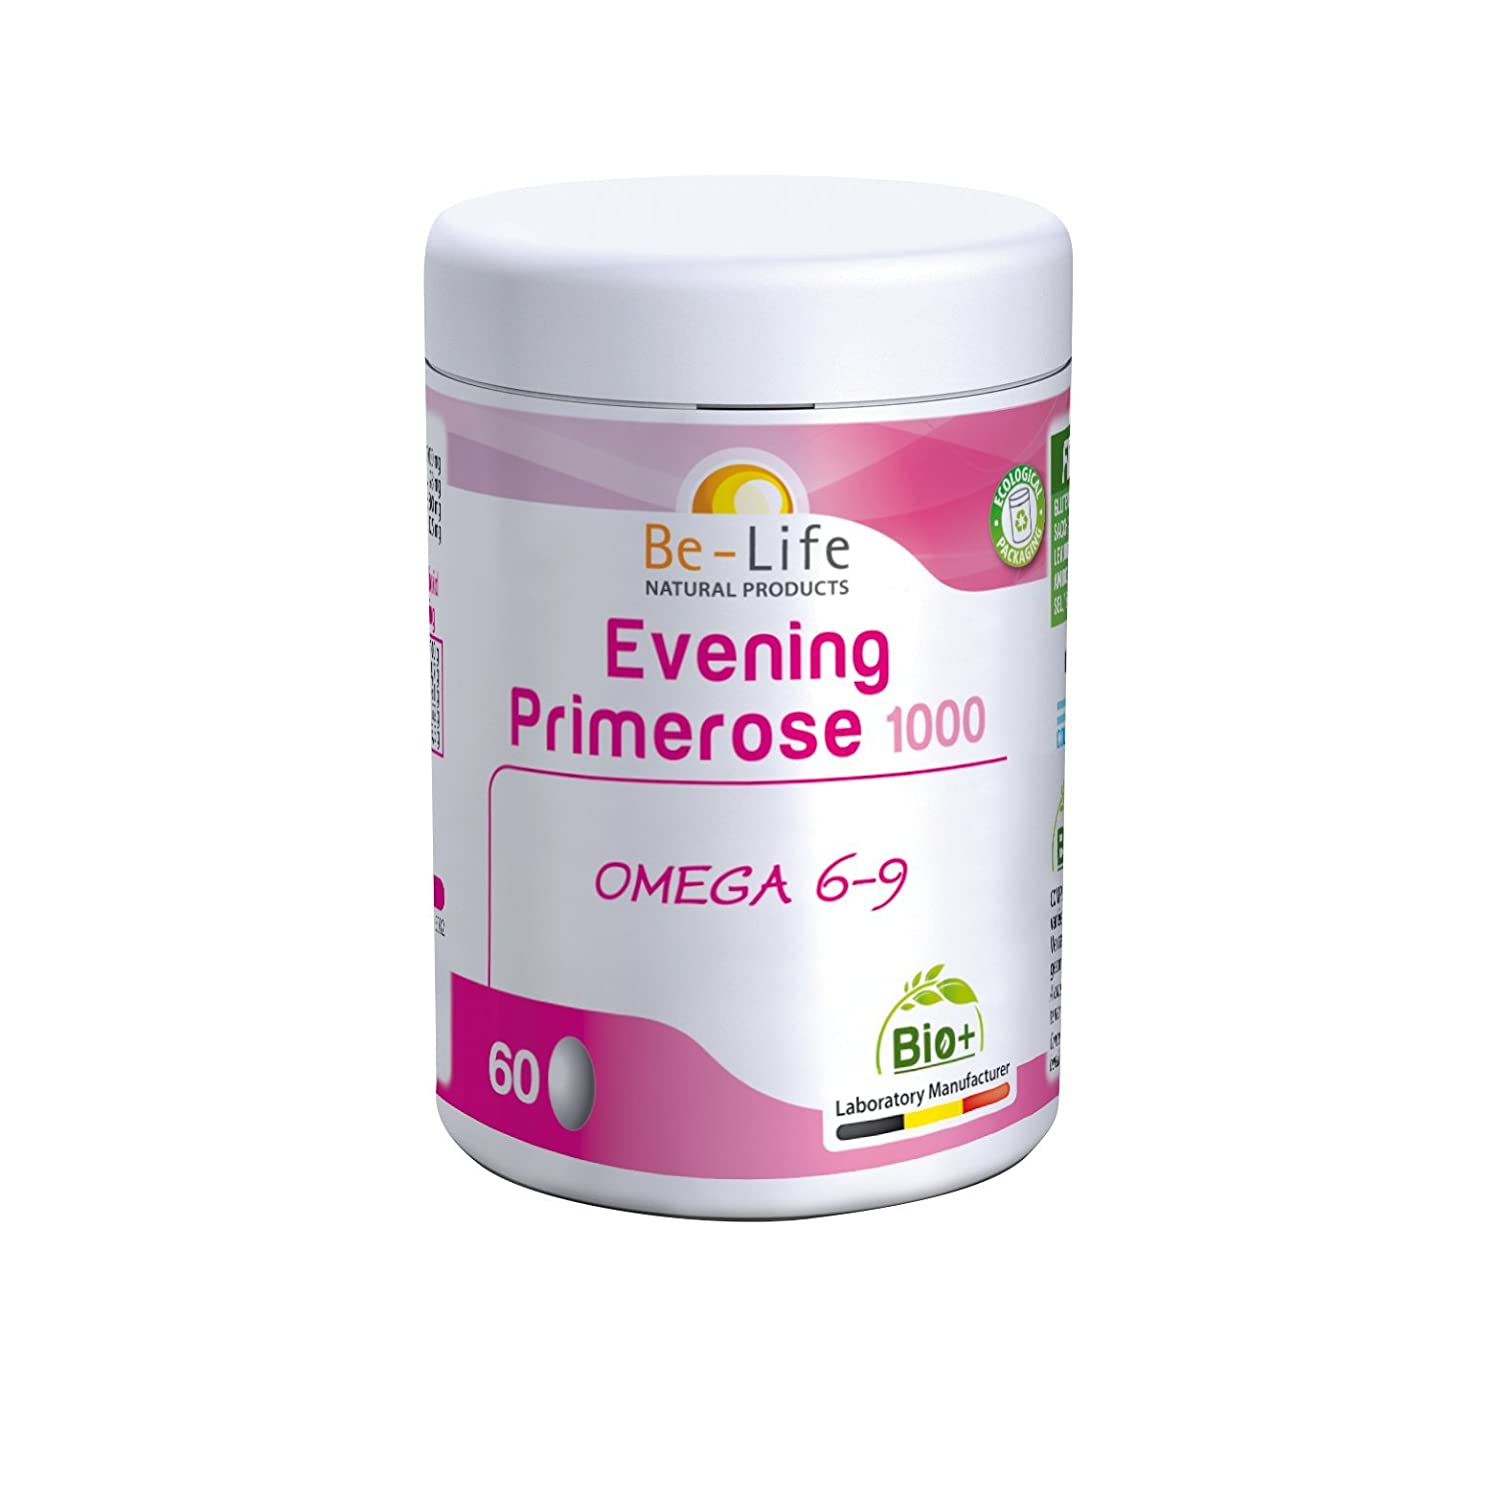 be-life Evening Primerose 1000 Bio - 60 caps.: Amazon.es: Salud y ...